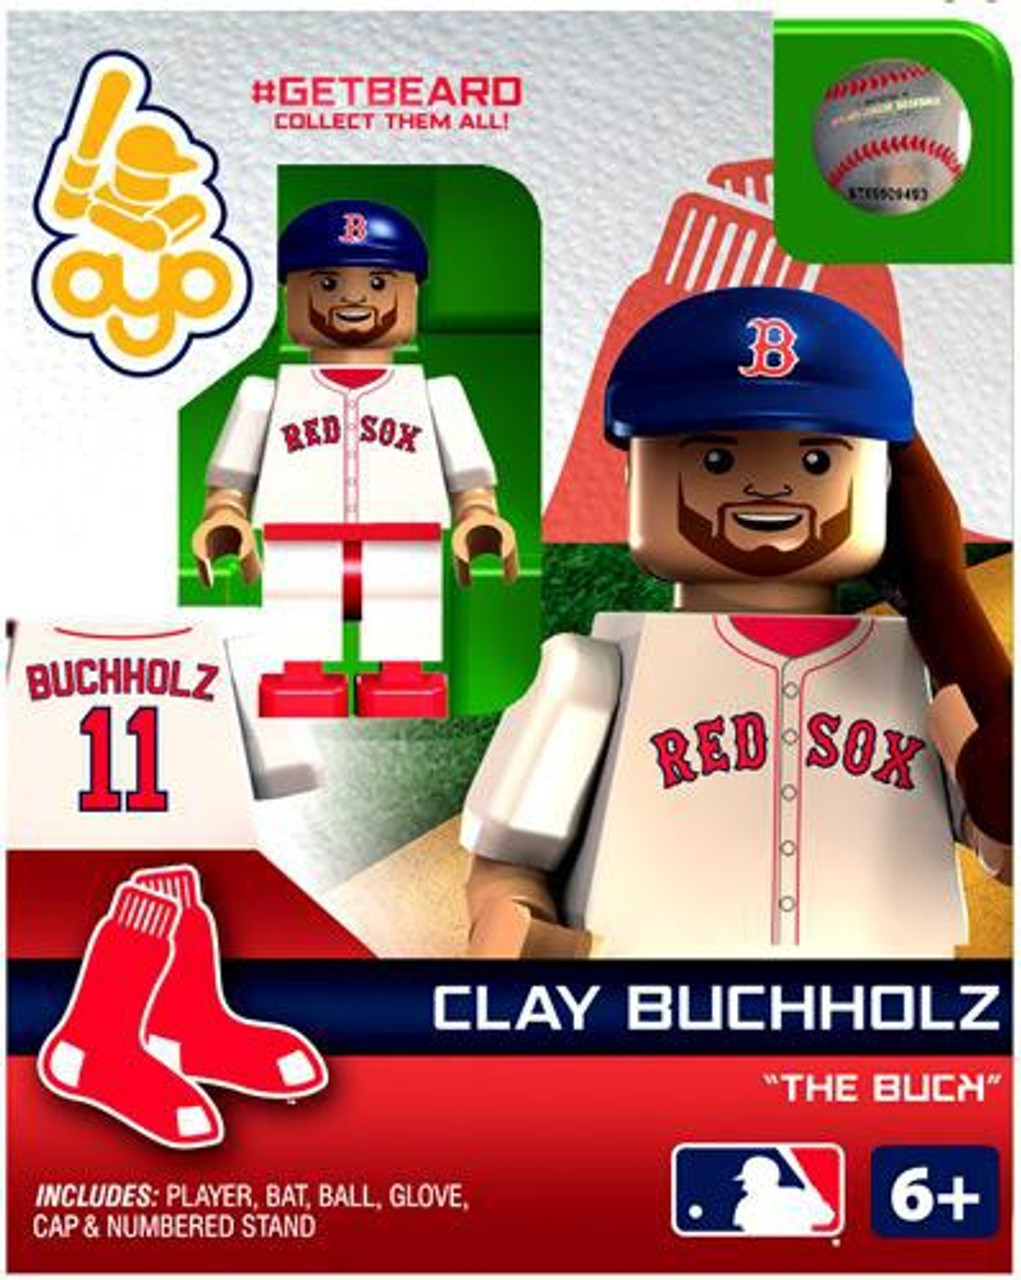 Boston Red Sox MLB Getbeard Clay Buchholz Minifigure GETBEARD [The Buck]